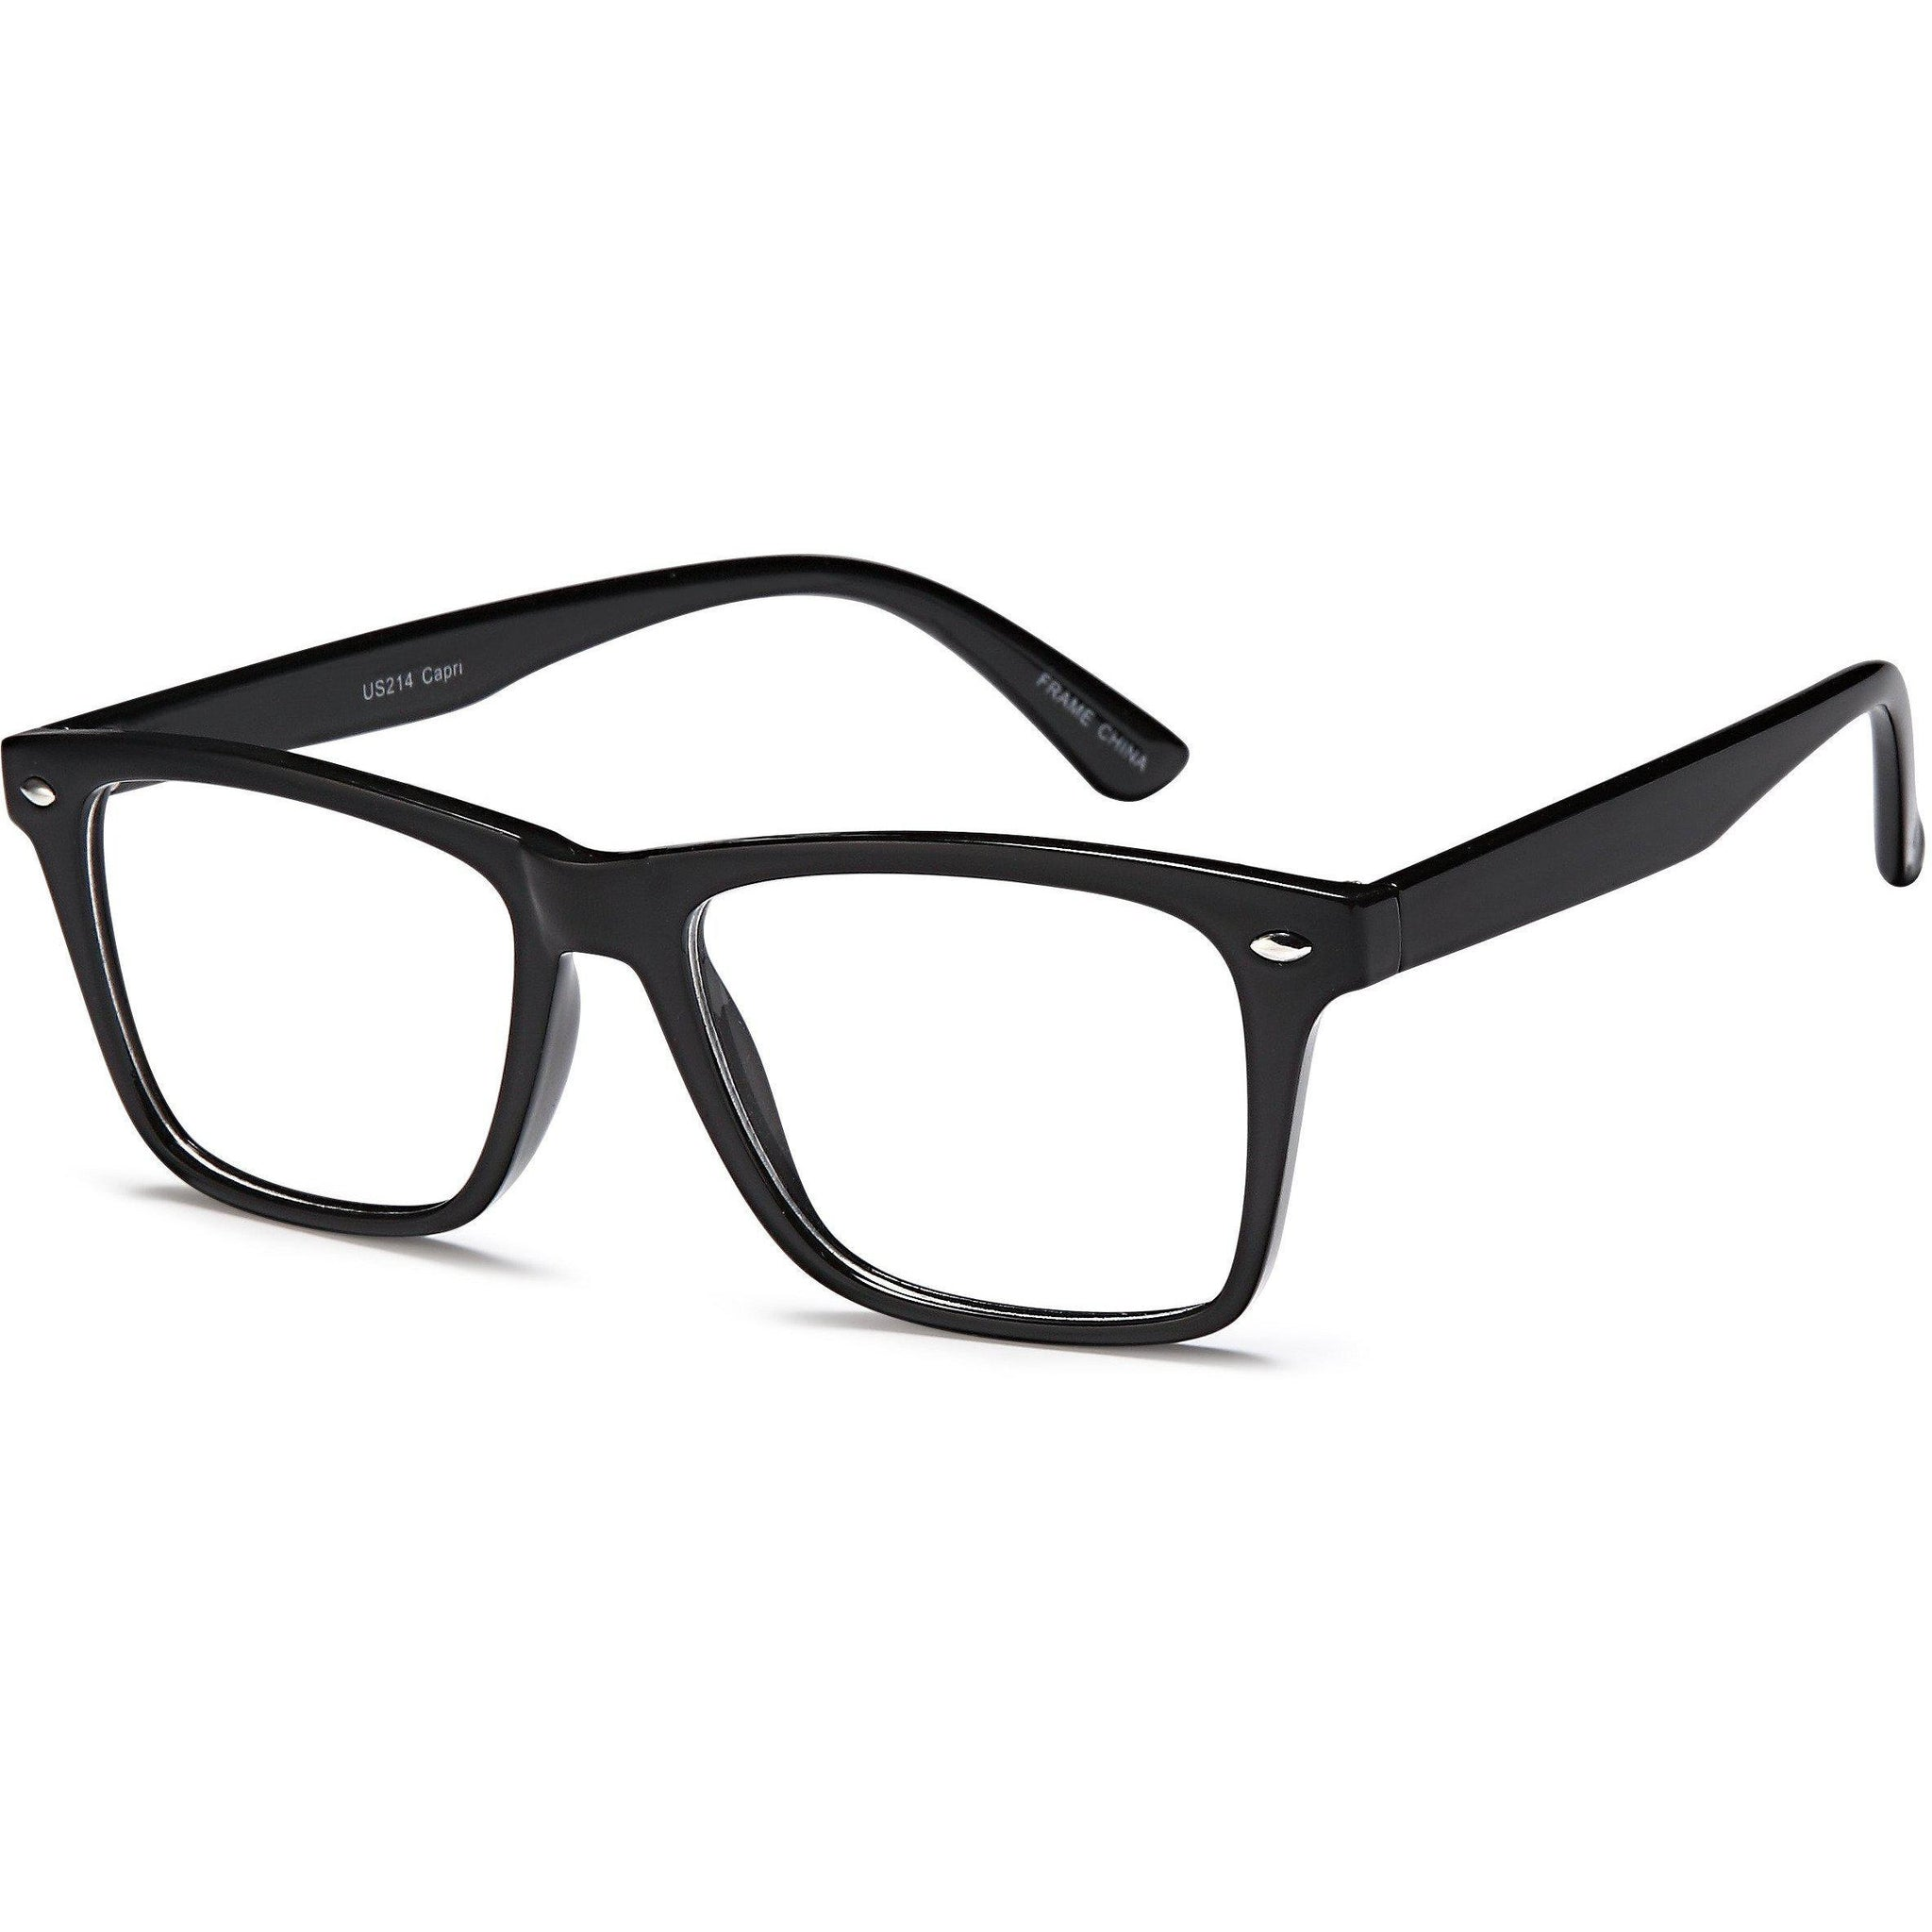 The Square Mile Prescription Glasses Millwall Eyeglasses